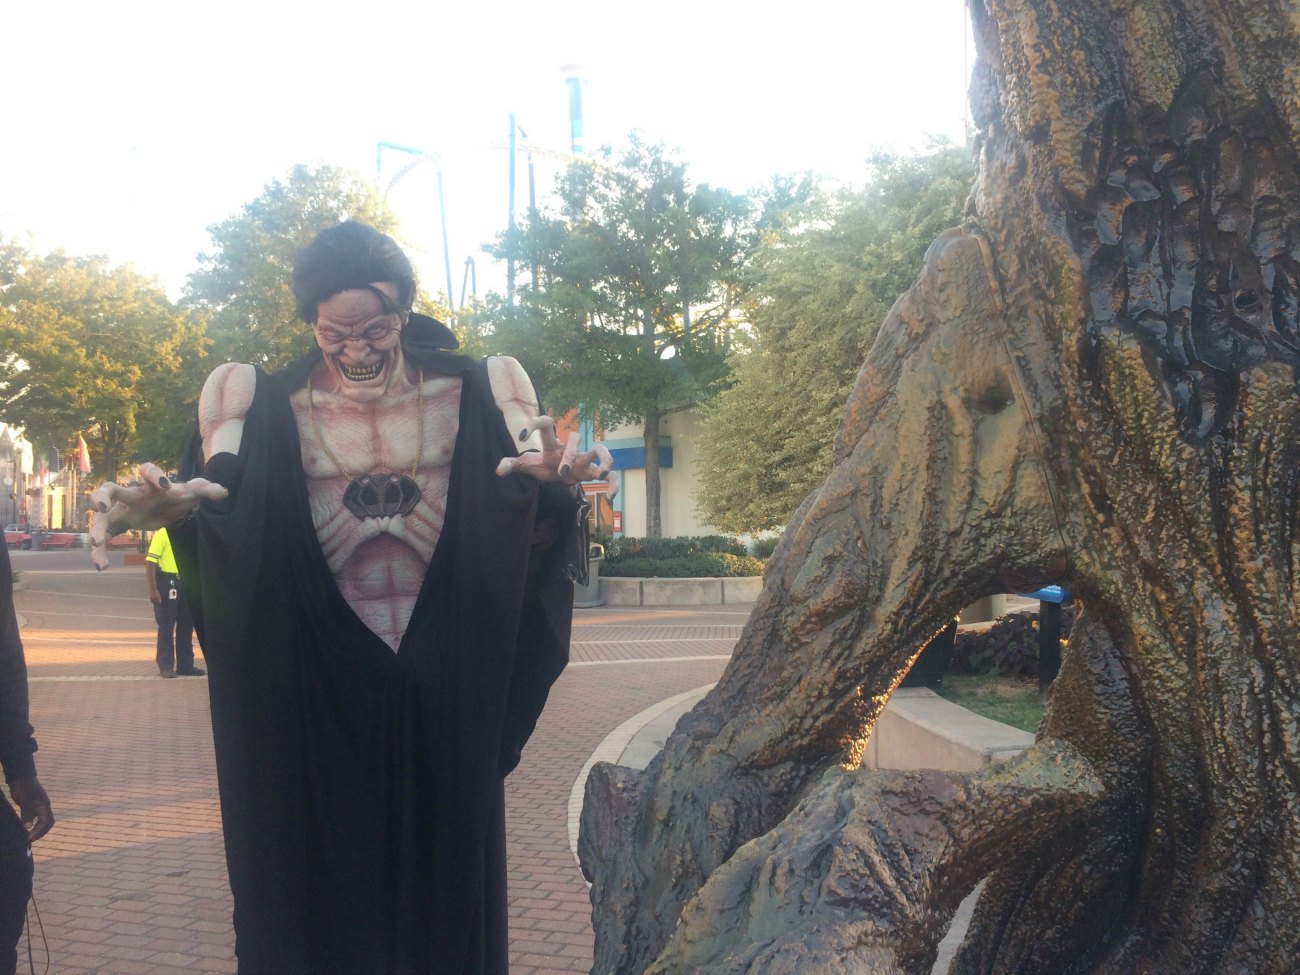 SCarowinds opens tonight which means the countdown to Halloween is on